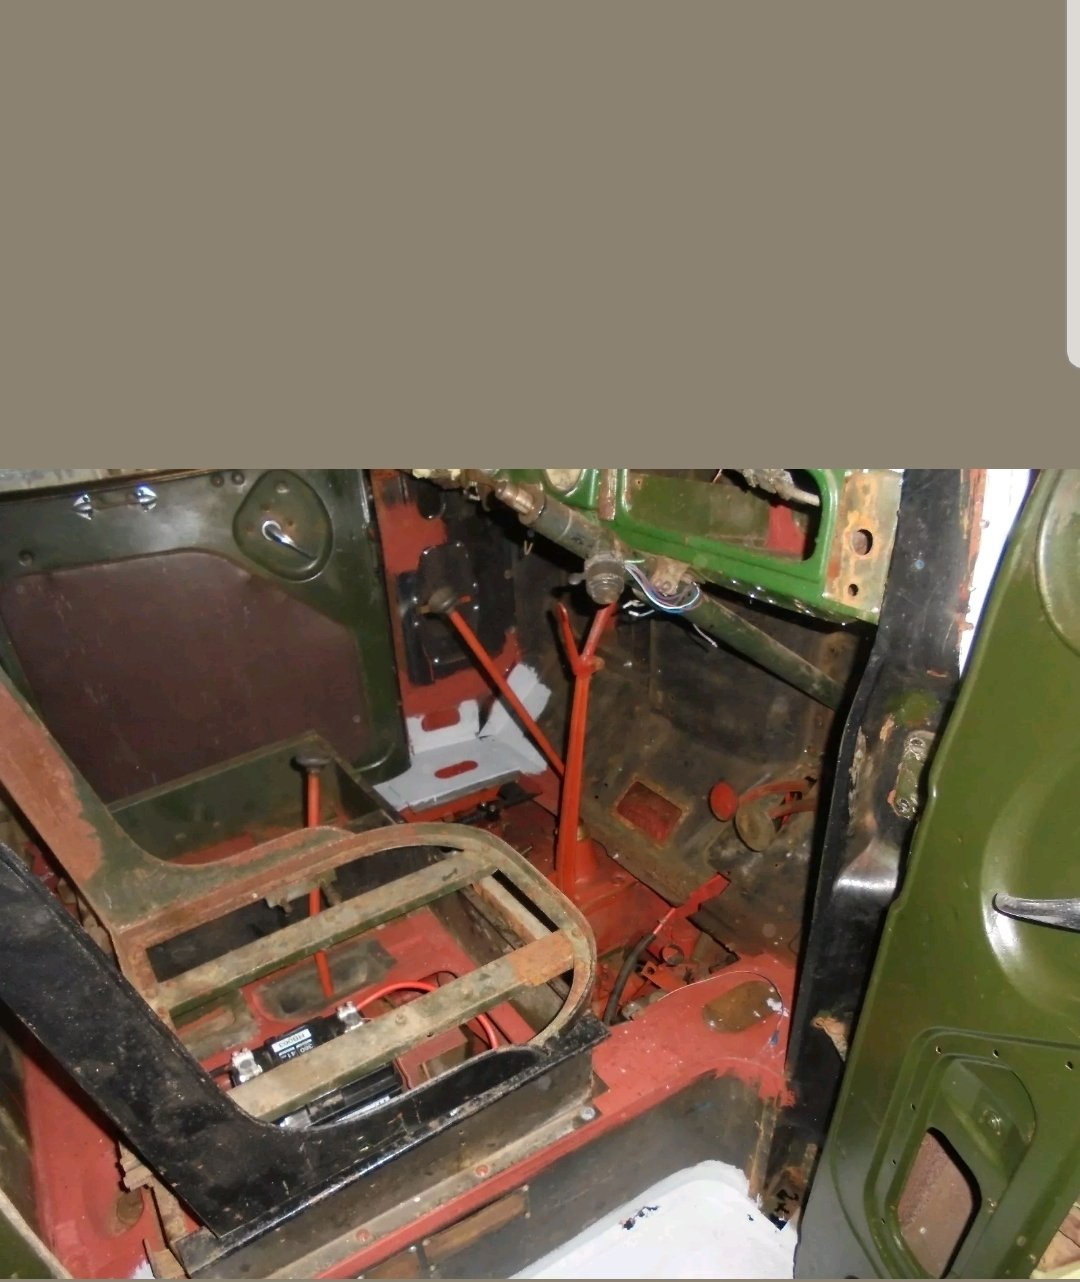 Morris commercial mra1 1950s 4x4 For Sale (picture 5 of 5)